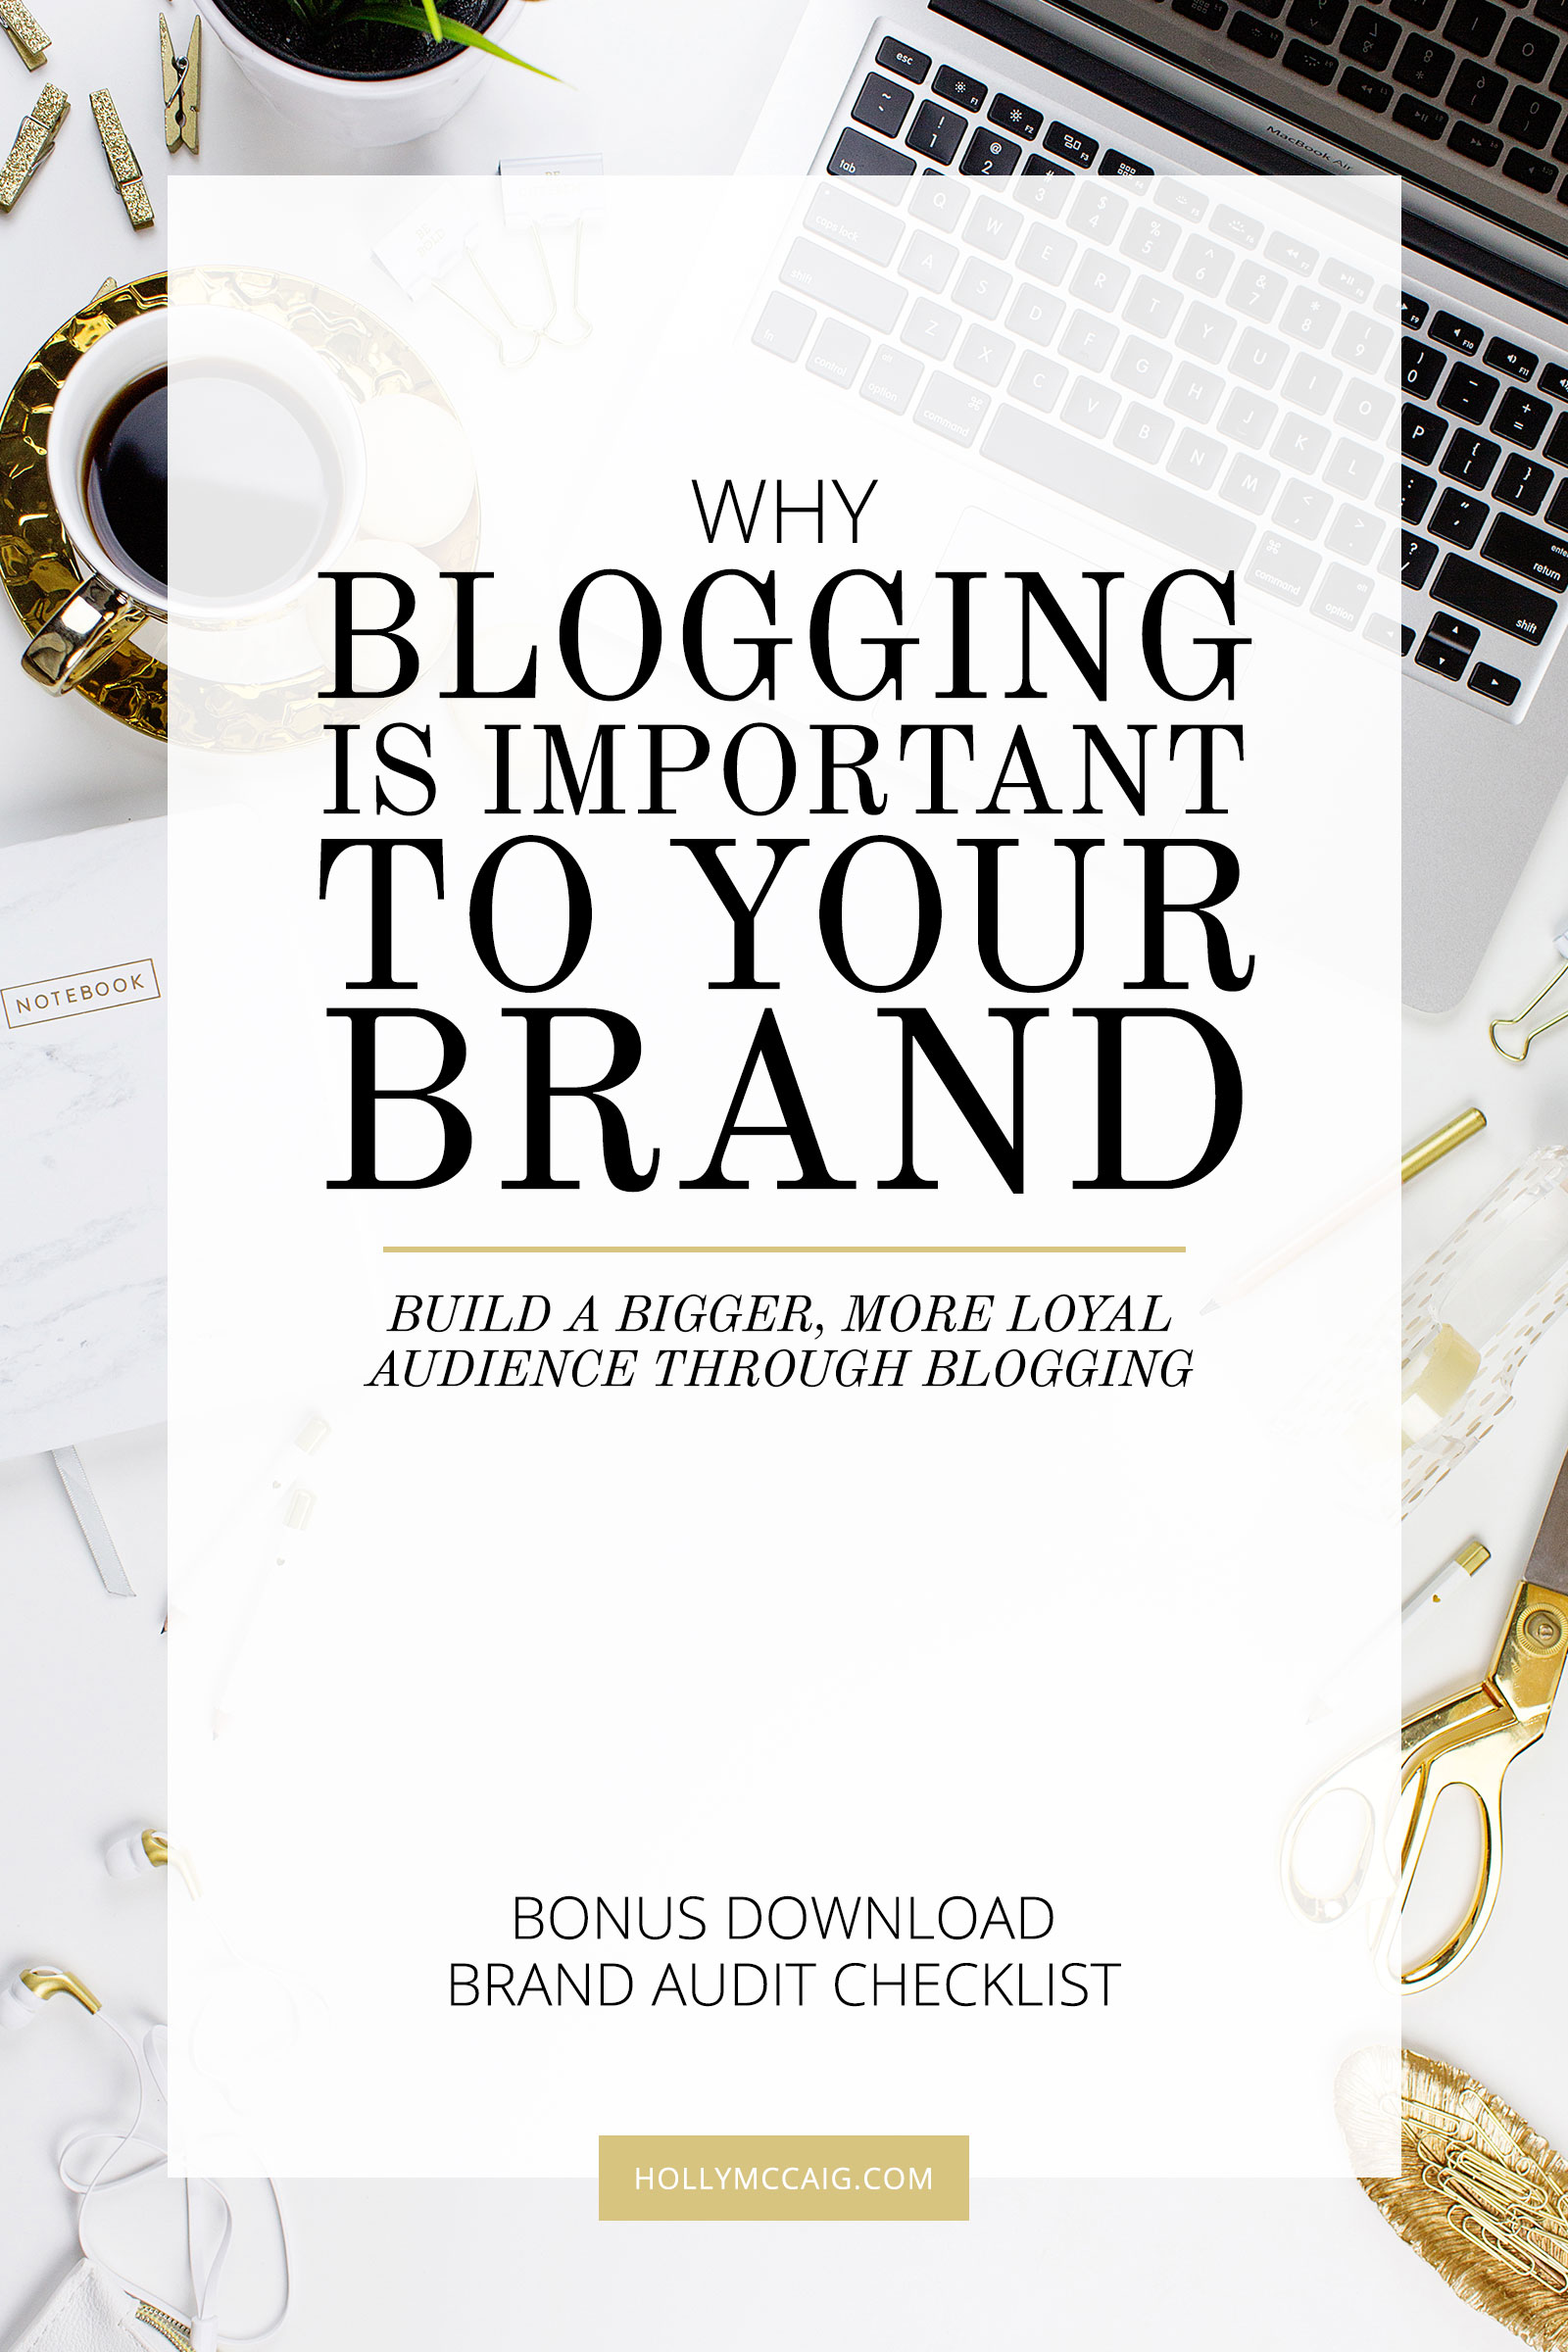 I've always felt that blogging is important to your brand. It's either free or a relatively inexpensive way to get your message out there to your audience. If you're not blogging consistently, you're missing out on vital connections that will boost your business. Learn how you can grow your loyal audience with blogging and download my brand audit checklist at hollymccaig.com.